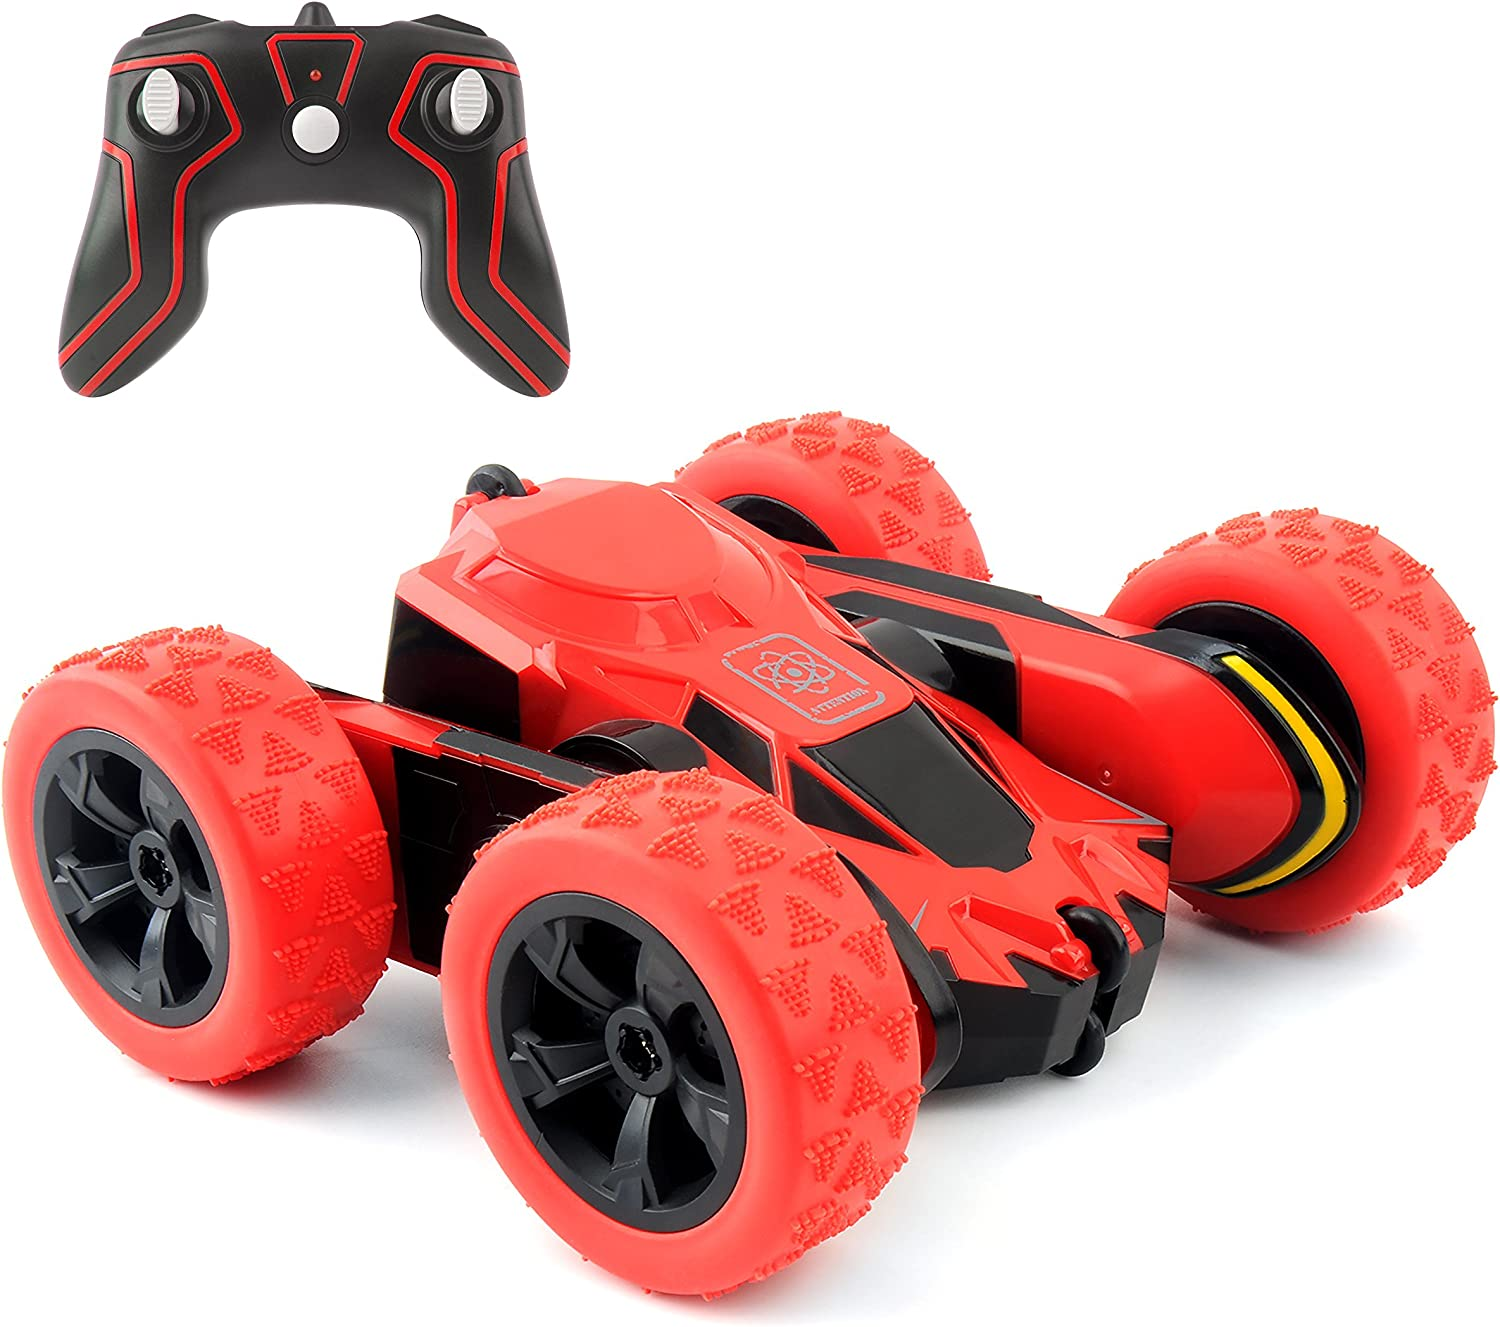 Rimila Remote Control Car Electric 4WD RC Stunt Car Off Road Vehicle 2.4Ghz Racing Cars 7.5Mph 360°Rotating Kids Toy Cars Brithday Gift (Battery Not Included) 81Wv-DyfozL